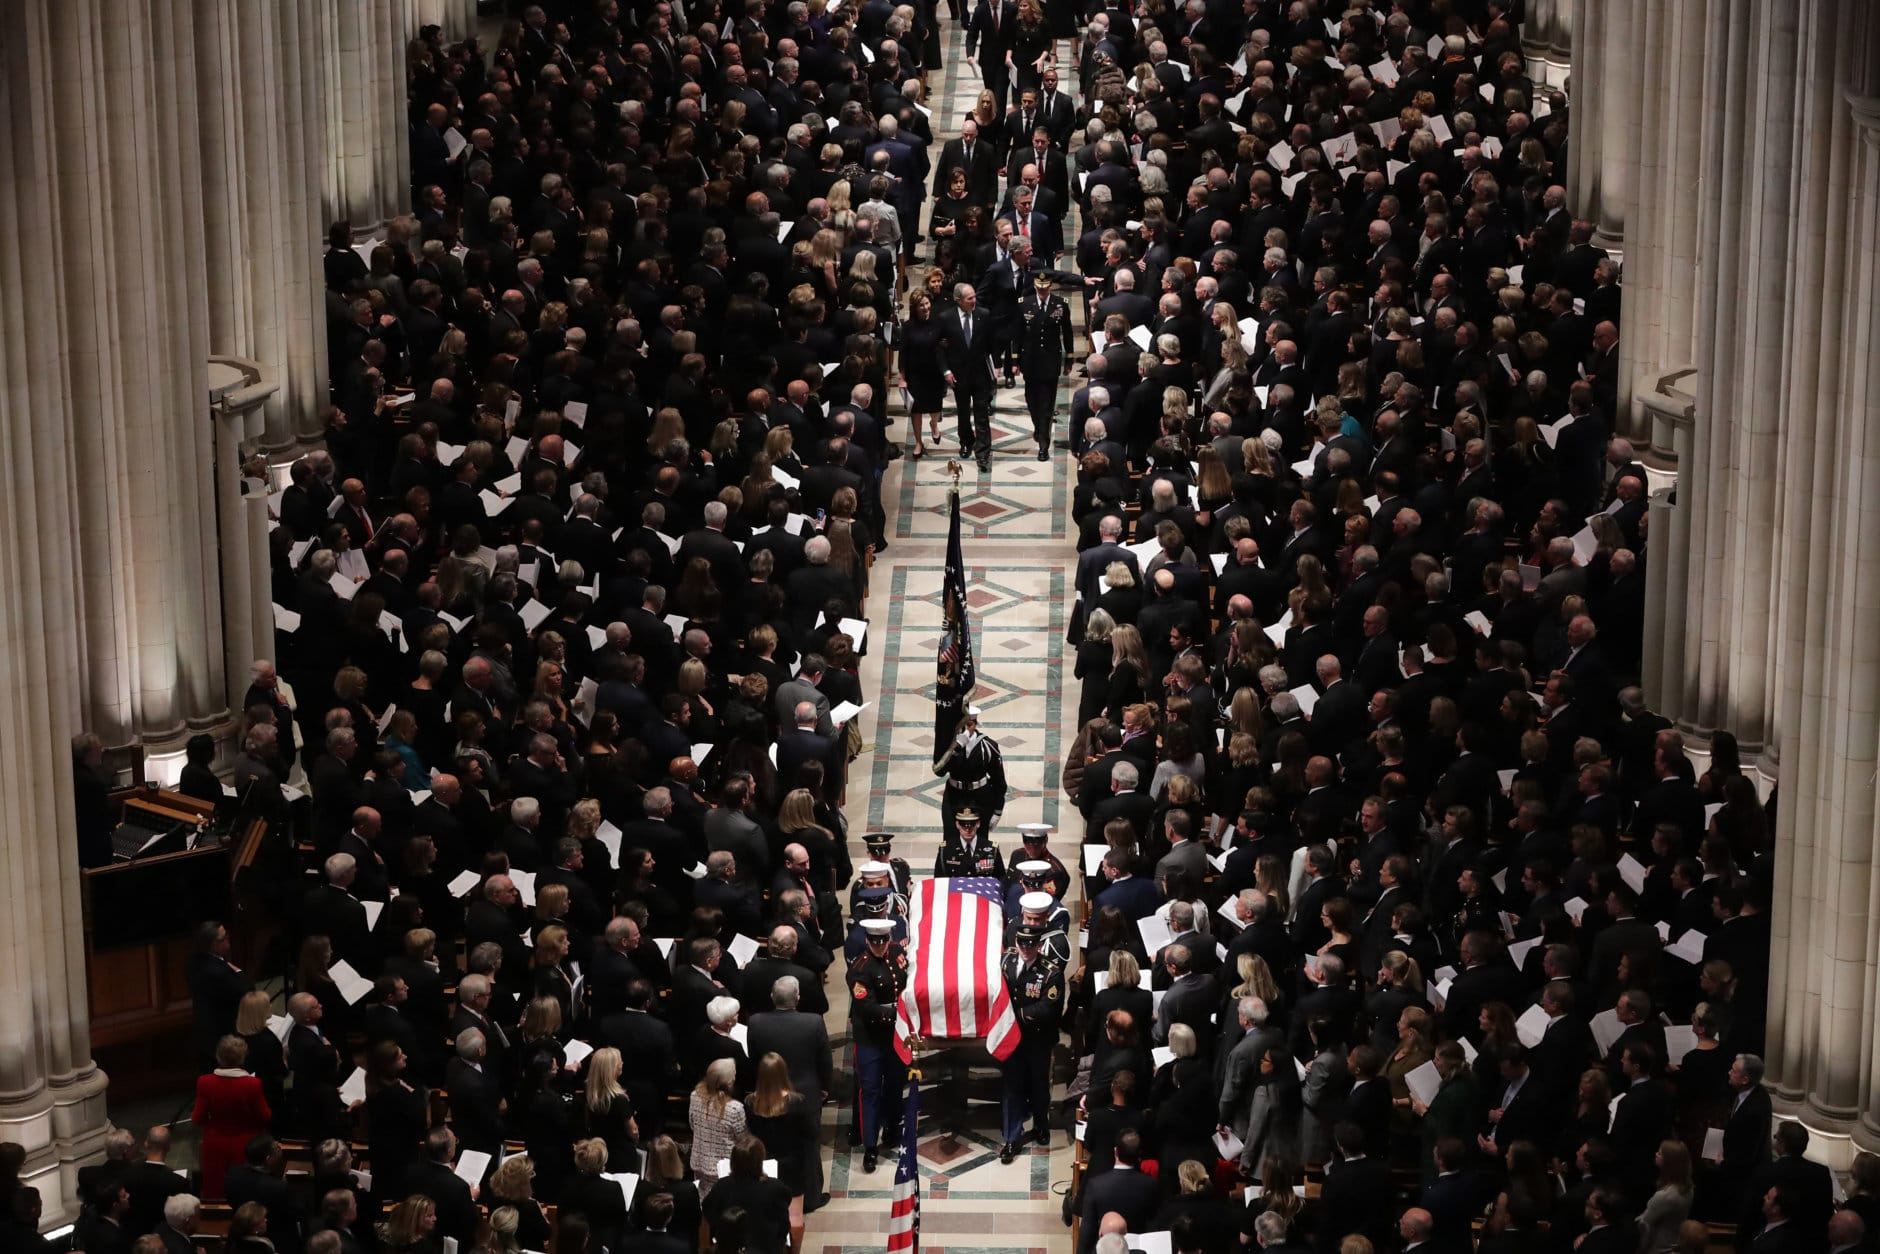 Members former President George H.W. Bush's family, including former President George W. Bush and former Florida Governor Jeb Bush, follow his casket out of the National Cathedral at the conclusion of his state funeral December 05, 2018 in Washington, DC. A WWII combat veteran, Bush served as a member of Congress from Texas, ambassador to the United Nations, director of the CIA, vice president and 41st president of the United States.  (Photo by Chip Somodevilla/Getty Images)